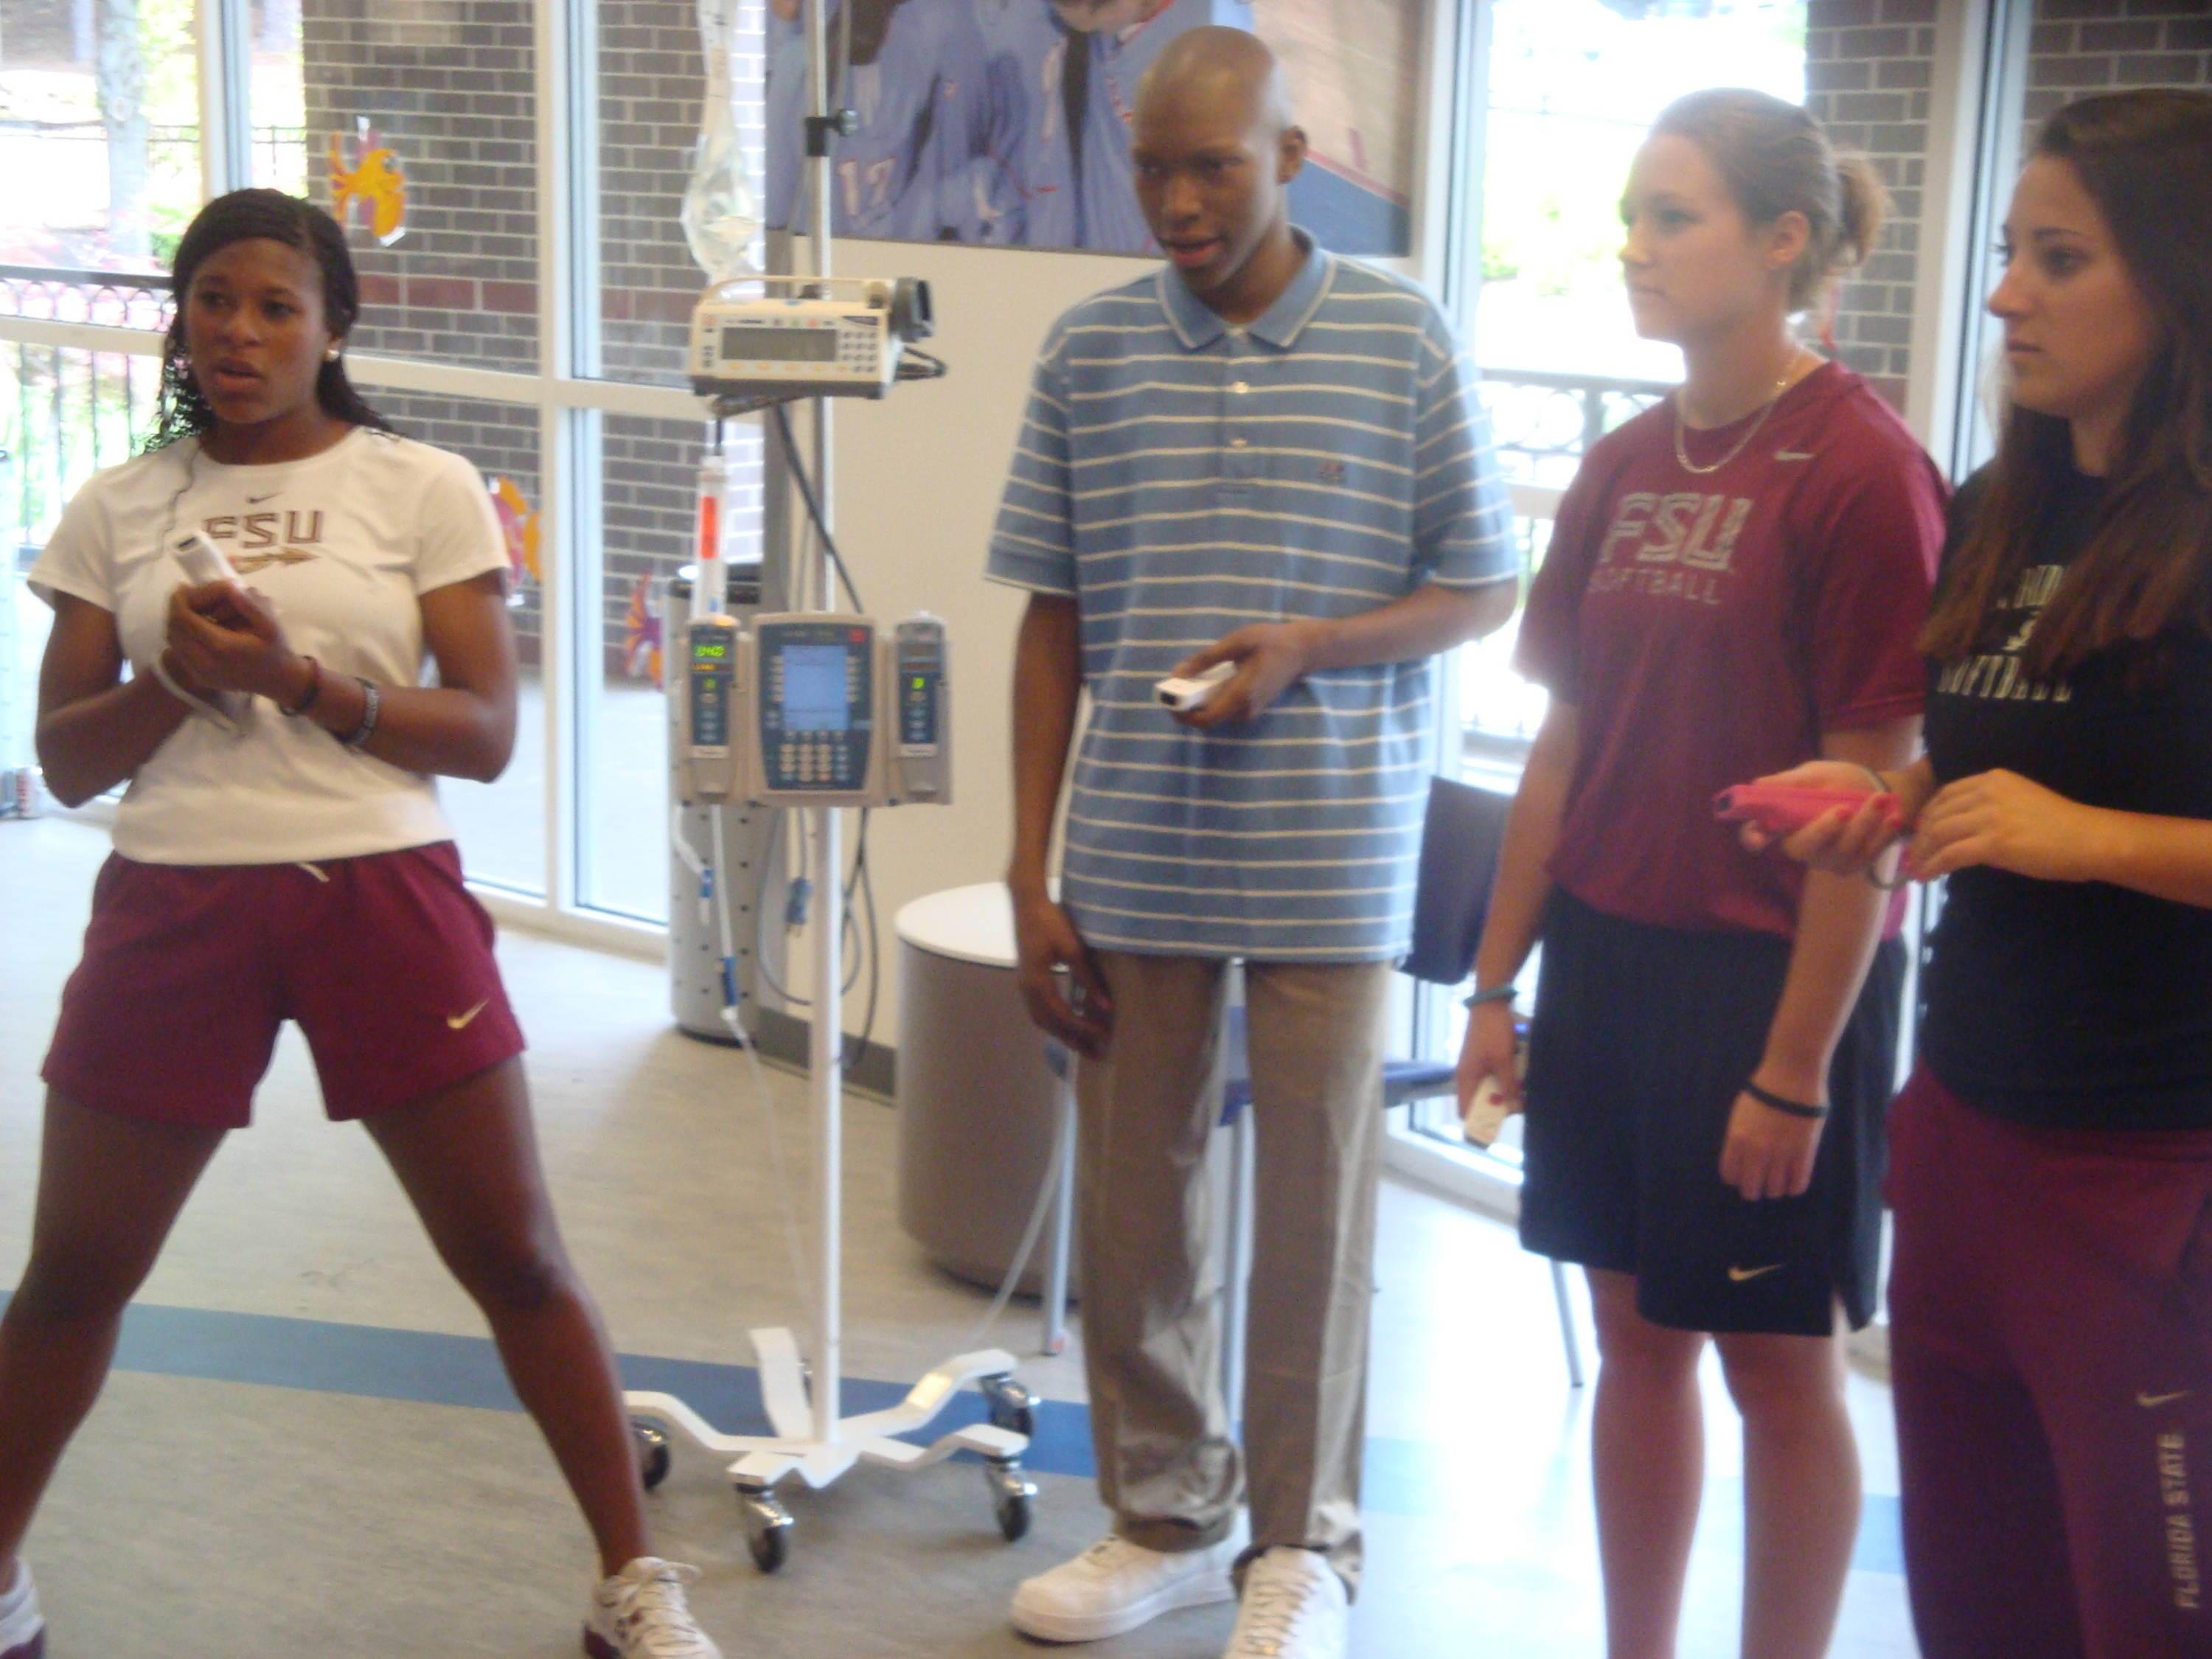 Today was Doc's 18th birthday! Tiffani Brown (L), Mallory Borden and Lauren Mullins celebrated with him by playing some Wii Olympics - It brought out the best in each player!